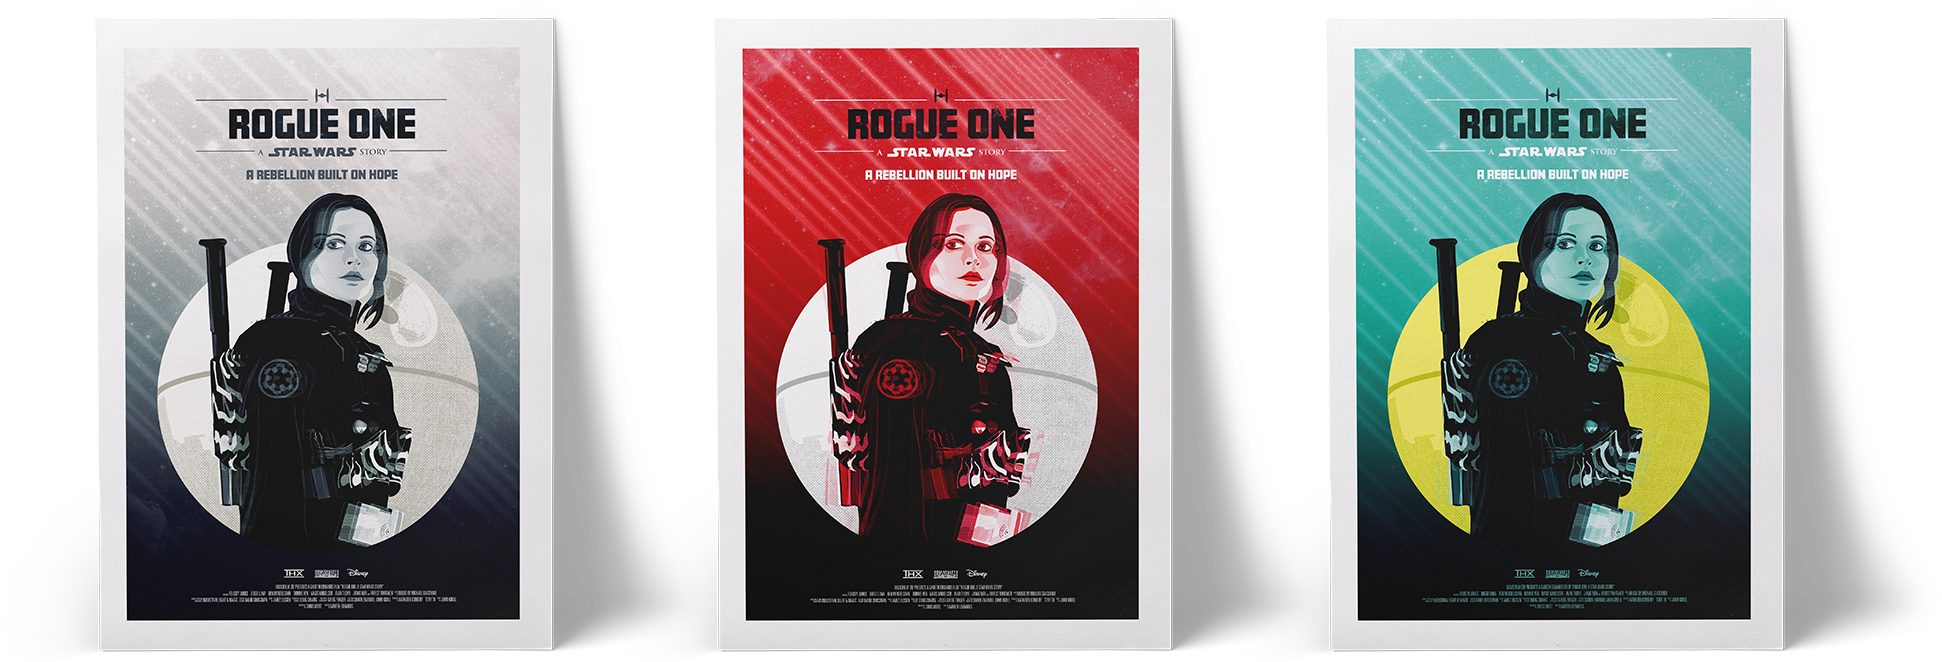 img_rogueone_allposters.png